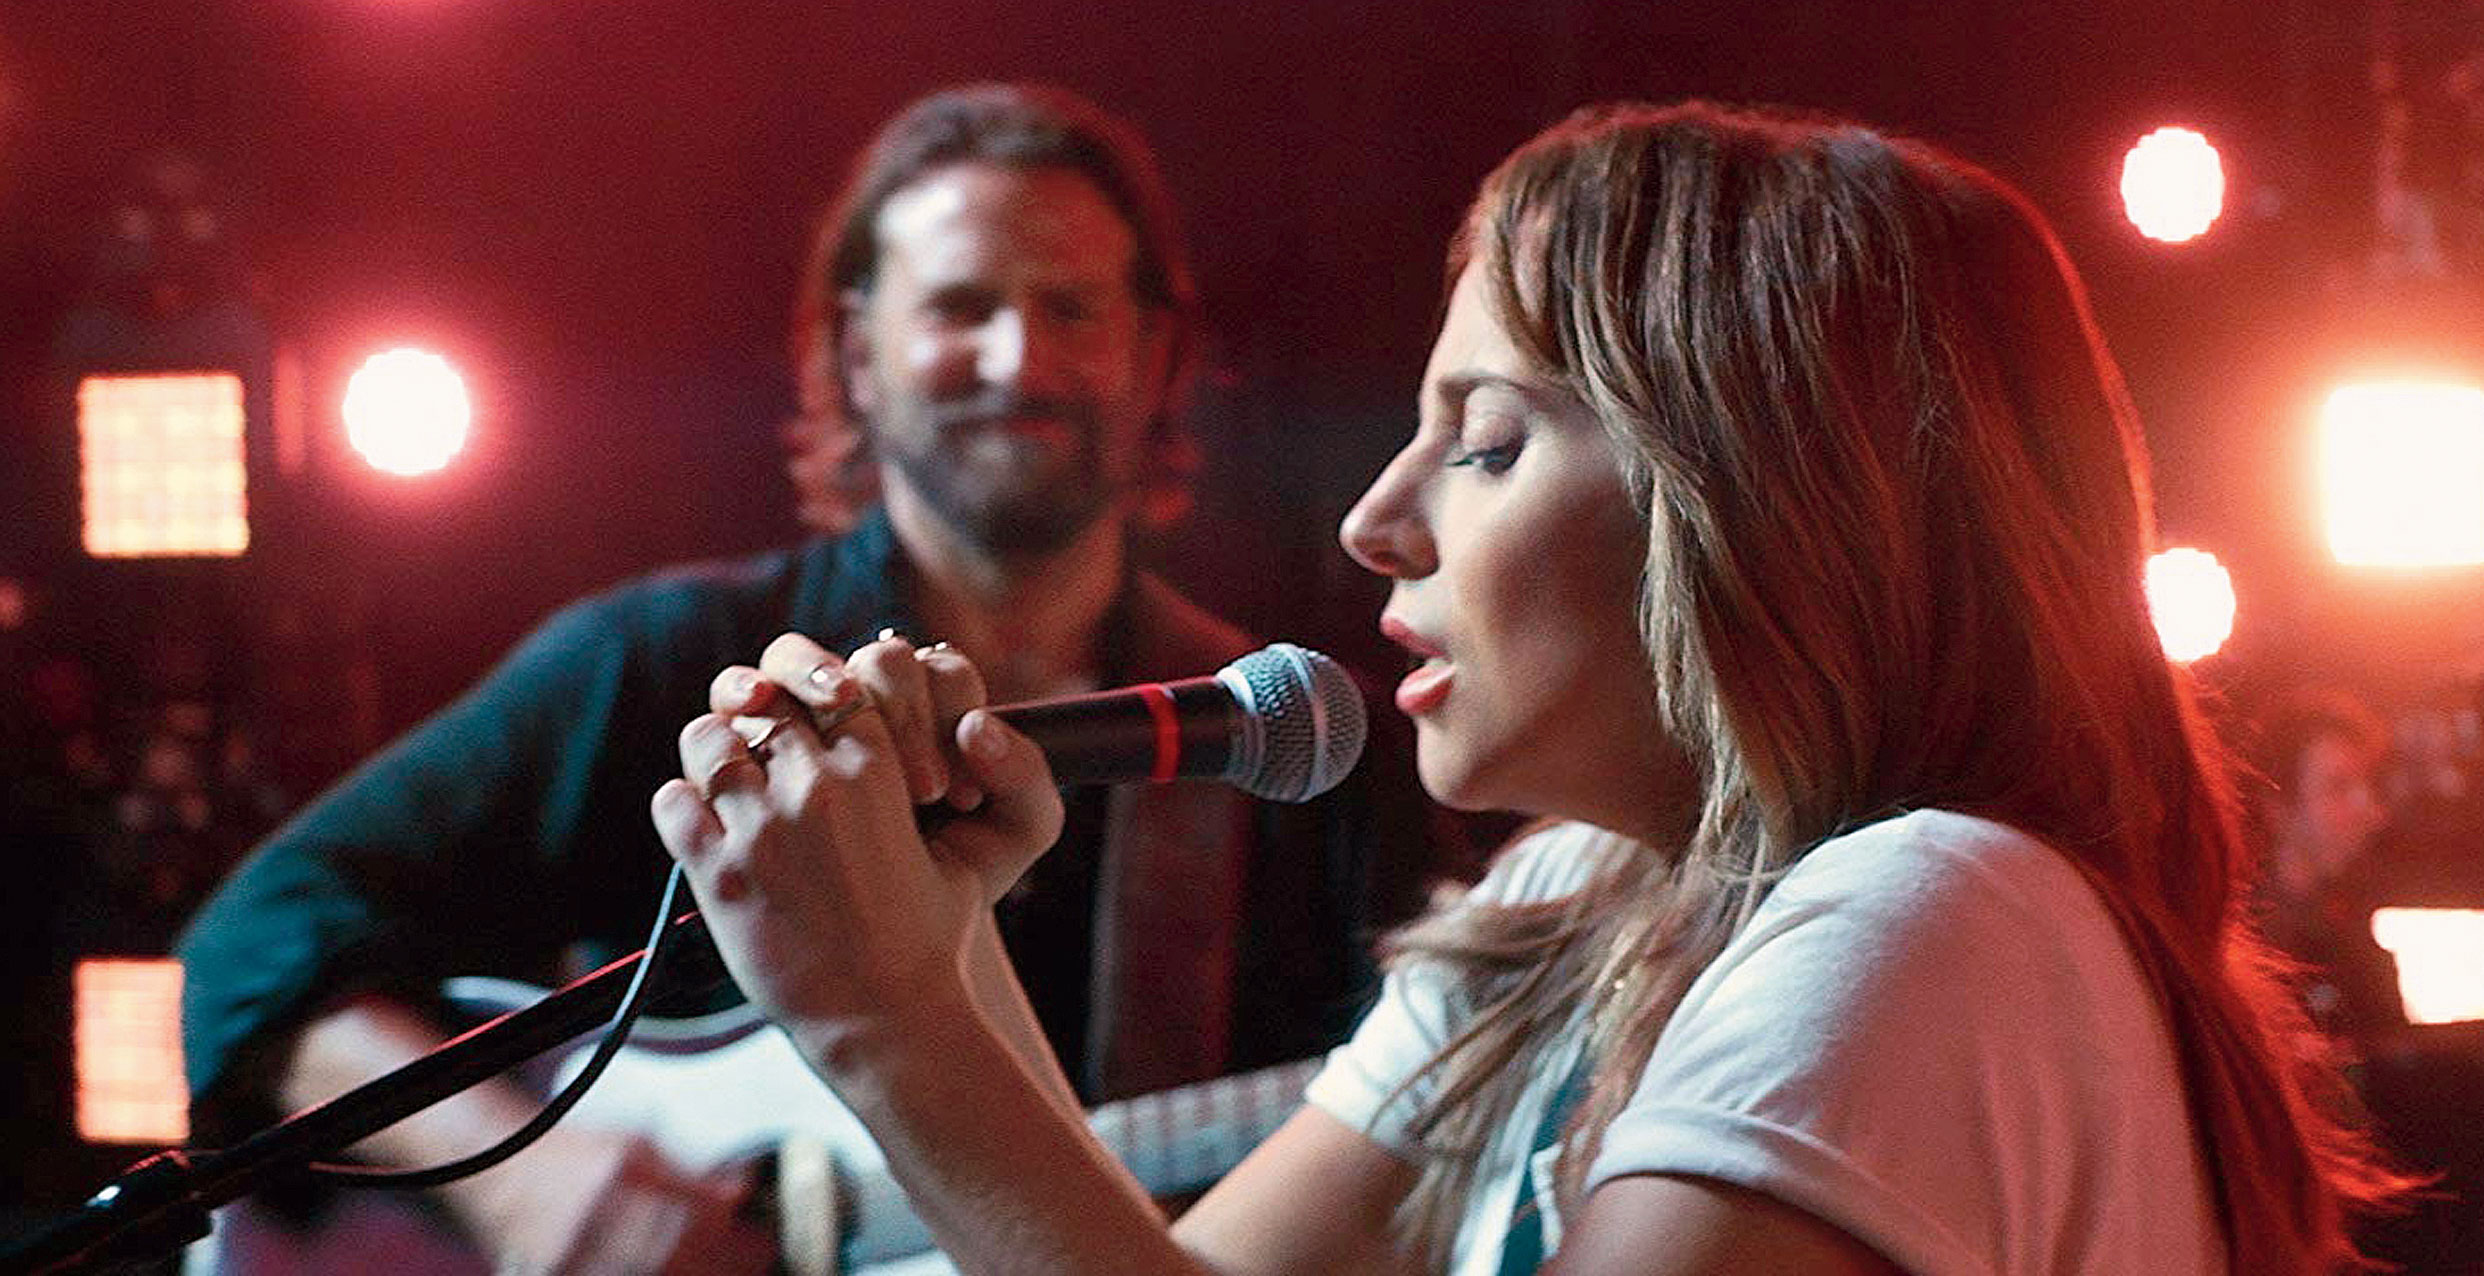 Bradley Cooper with Lady Gaga in A Star Is Born, releasing this Friday